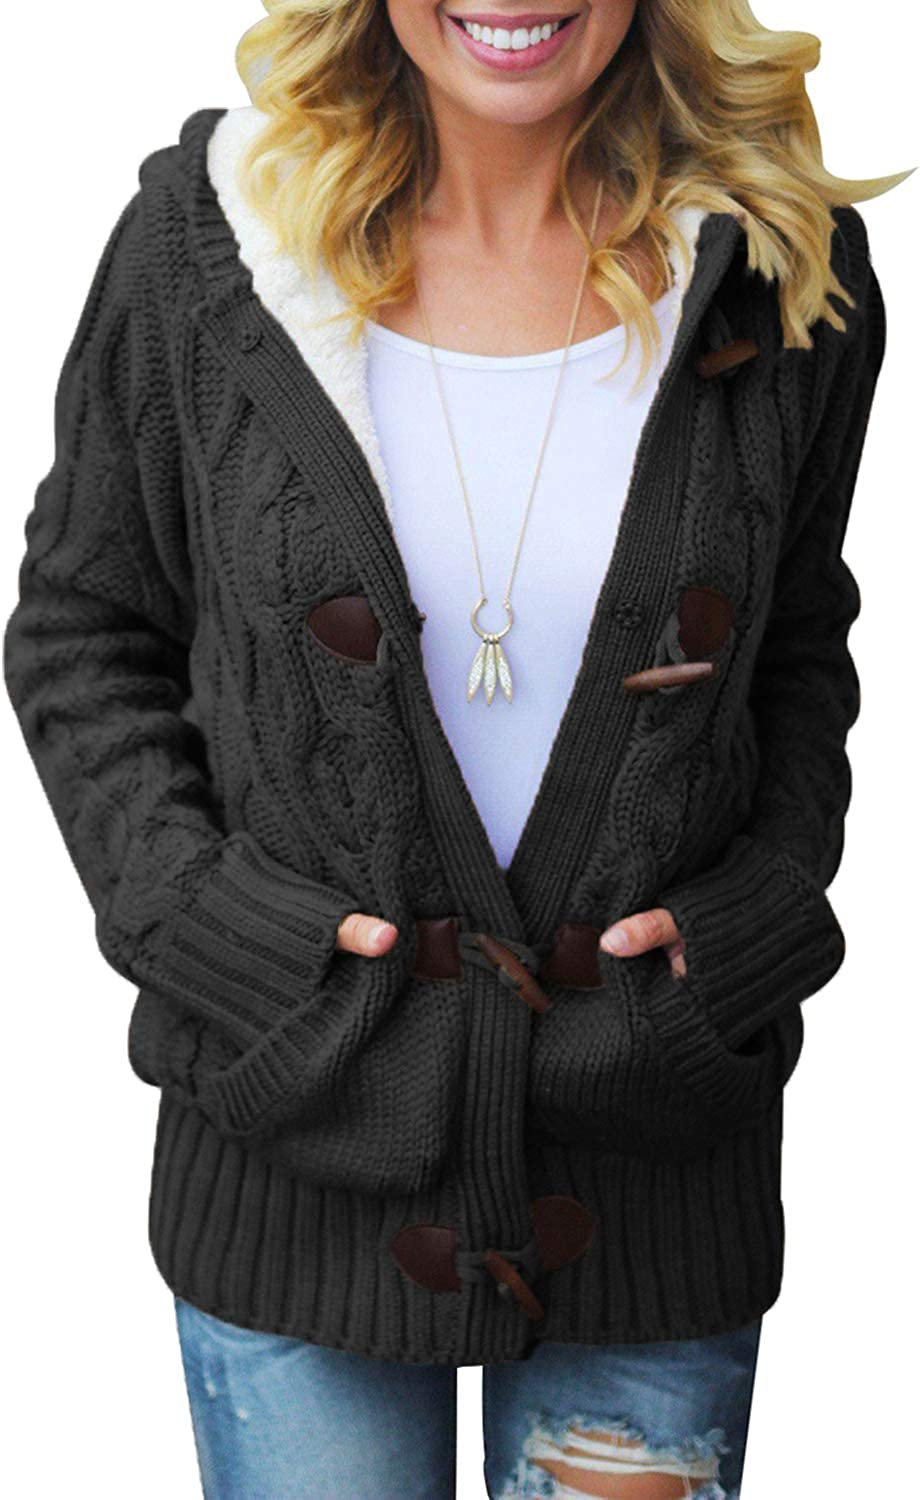 Aleumdr Womens Hooded Cardigans Casual Long Sleeve Button Up Cable Knit Sweater Coat Outwear with Pockets S-XXL